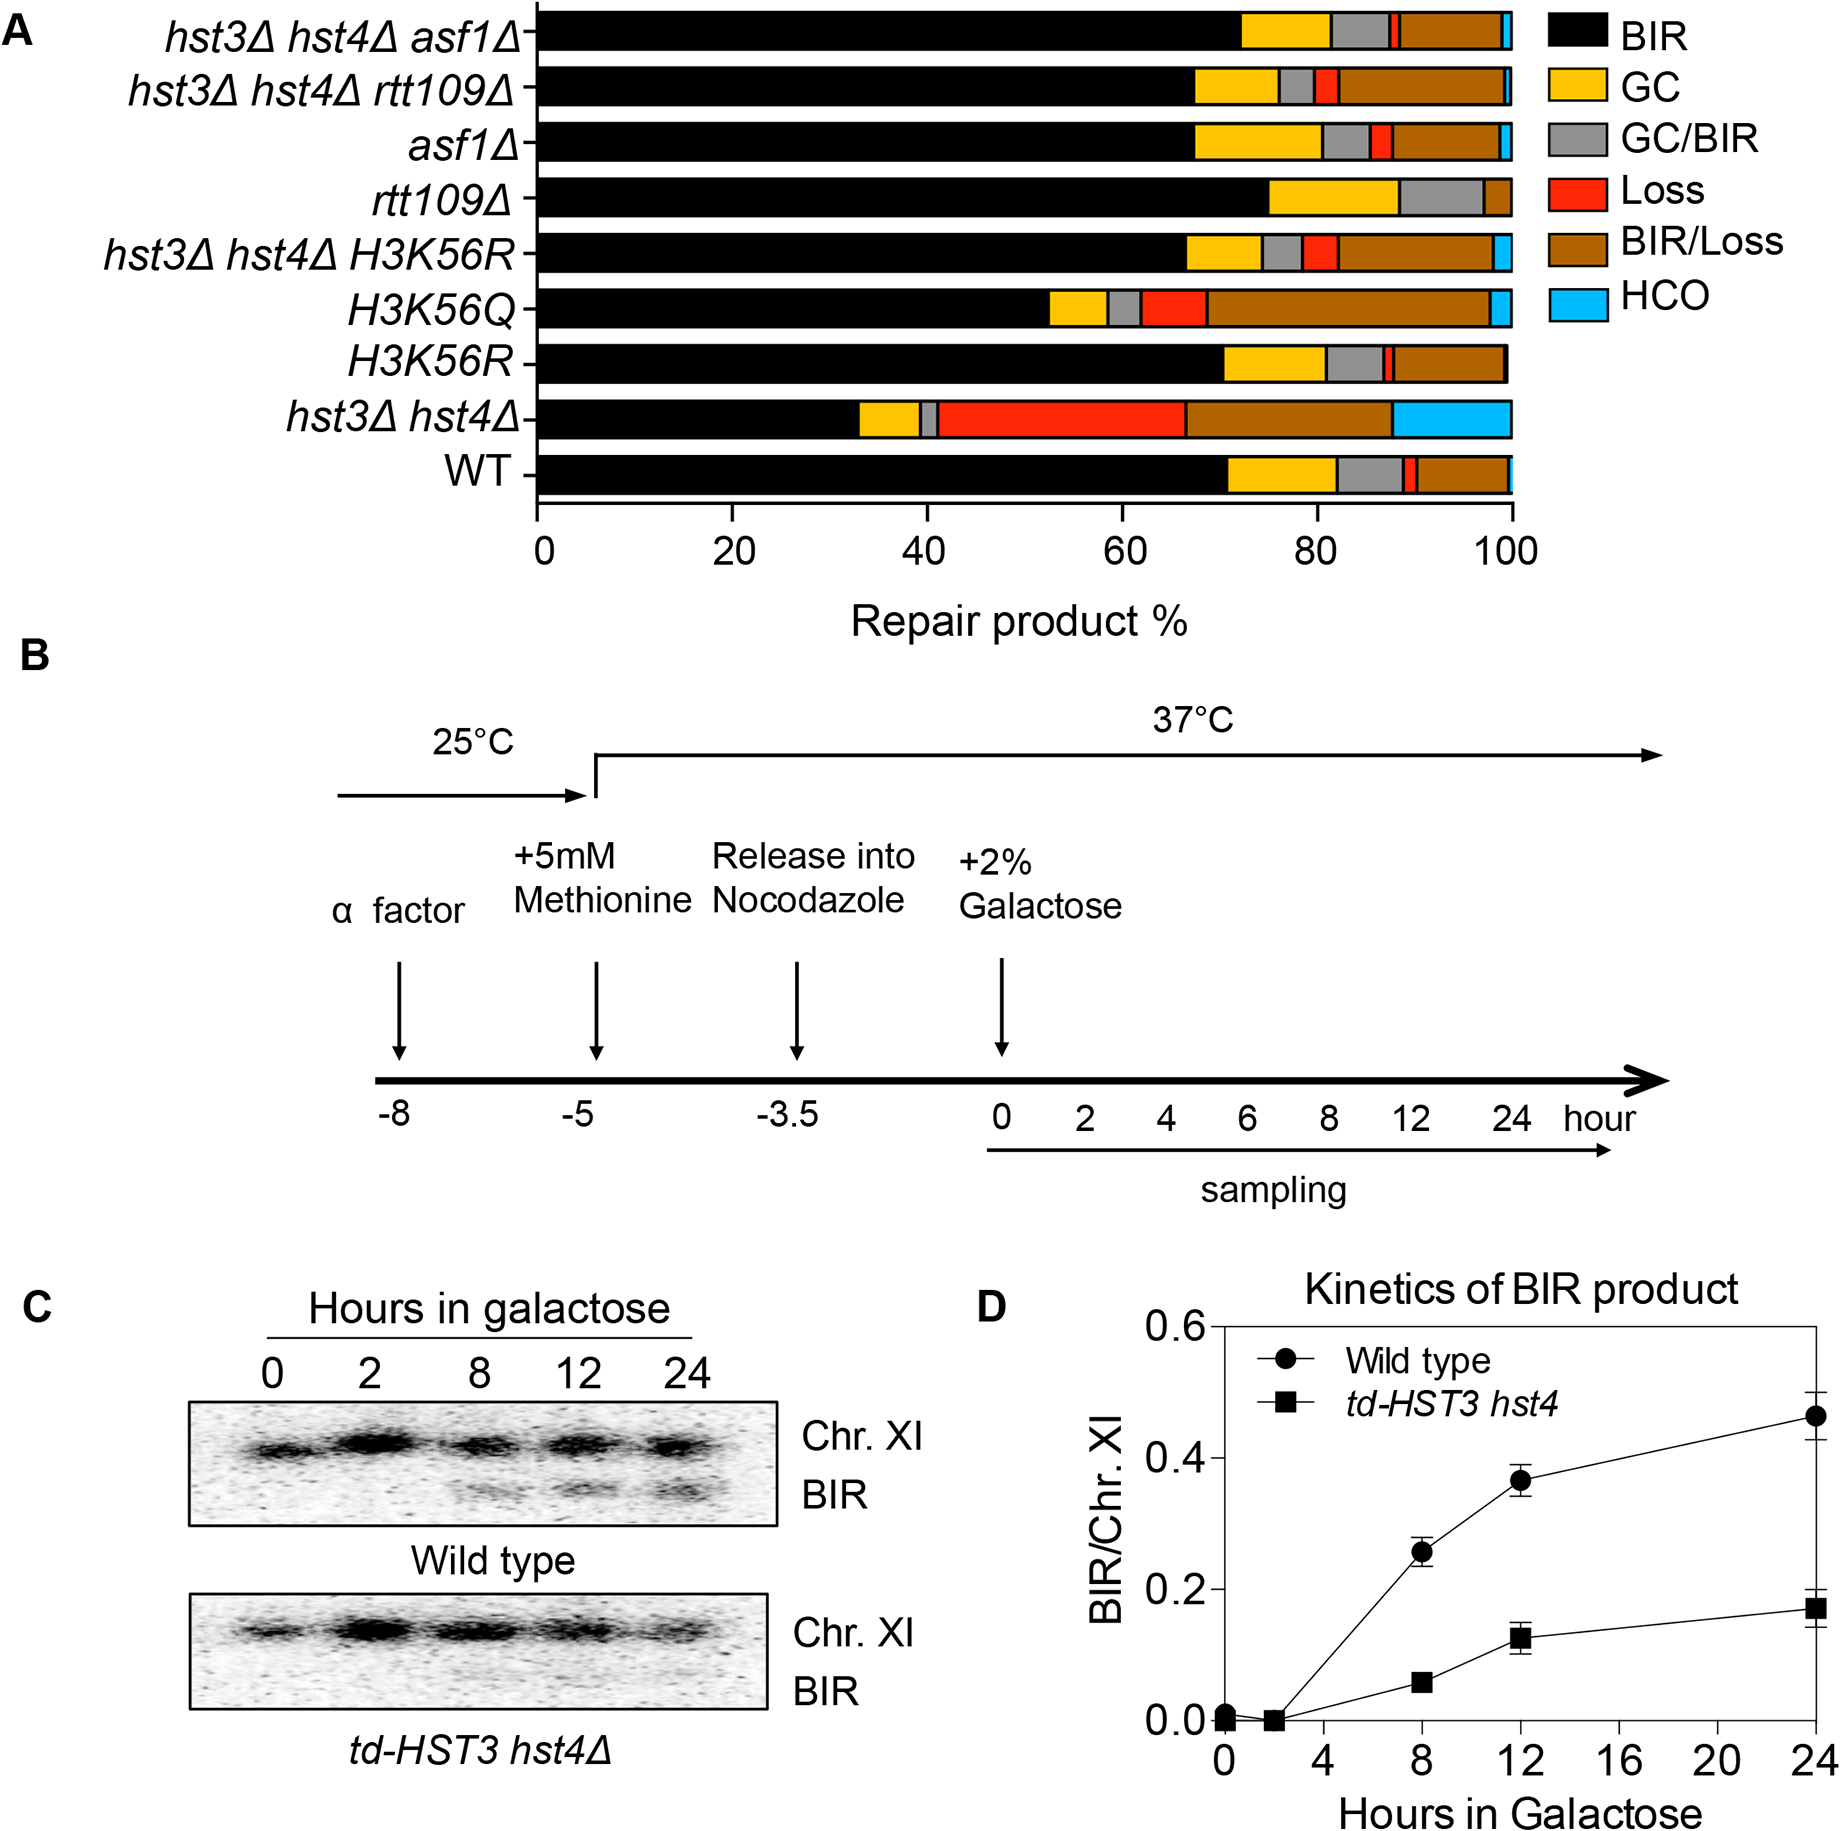 Hyper-acetylation of H3K56 causes BIR defects.